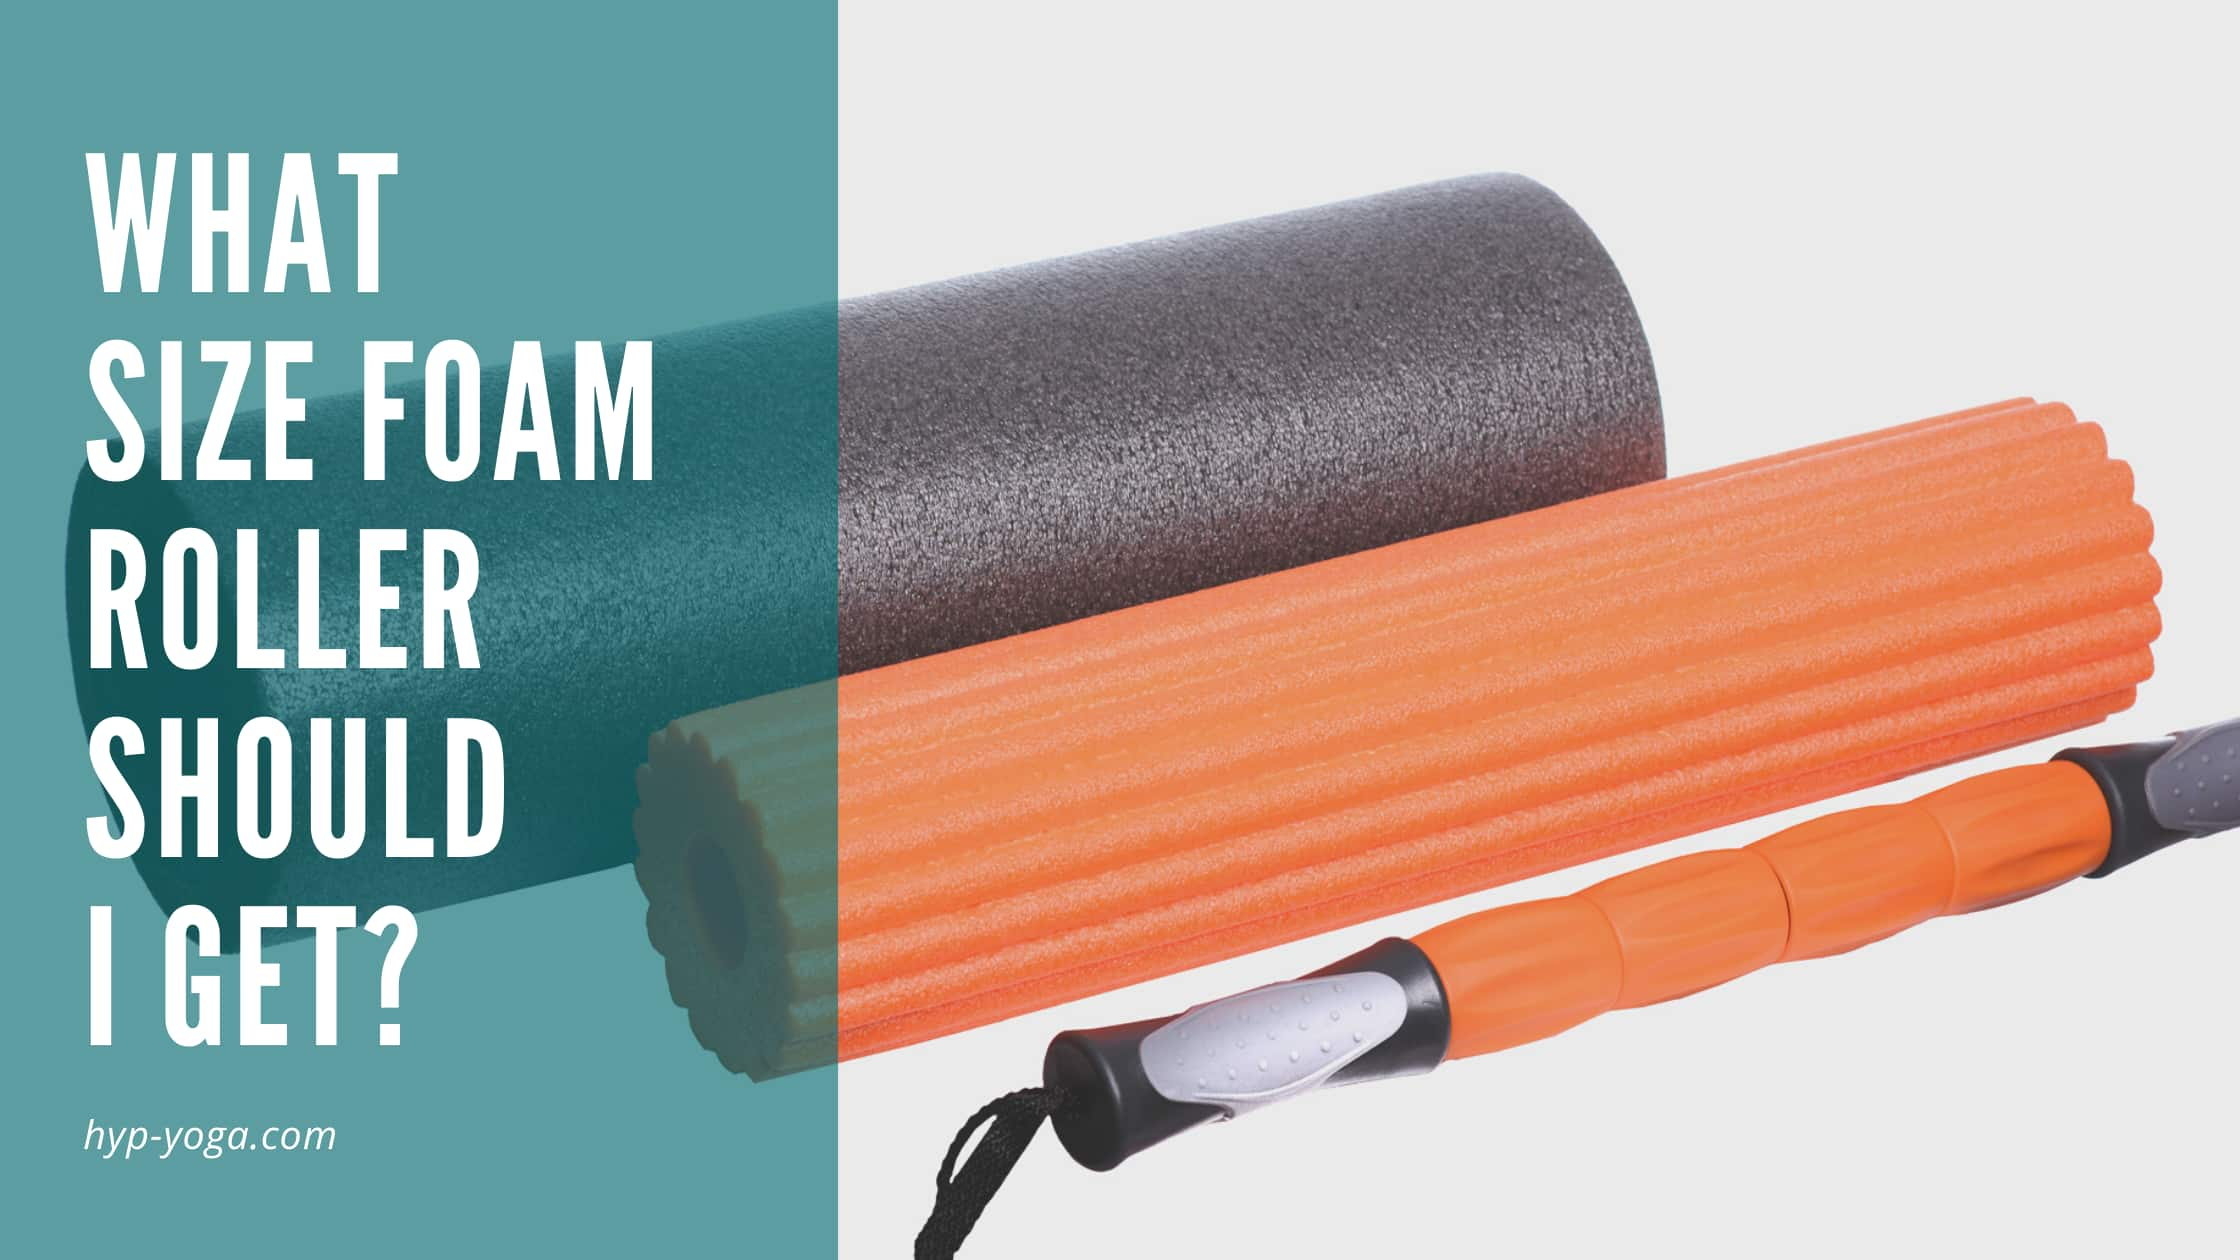 What Size Foam Roller Should I Get?